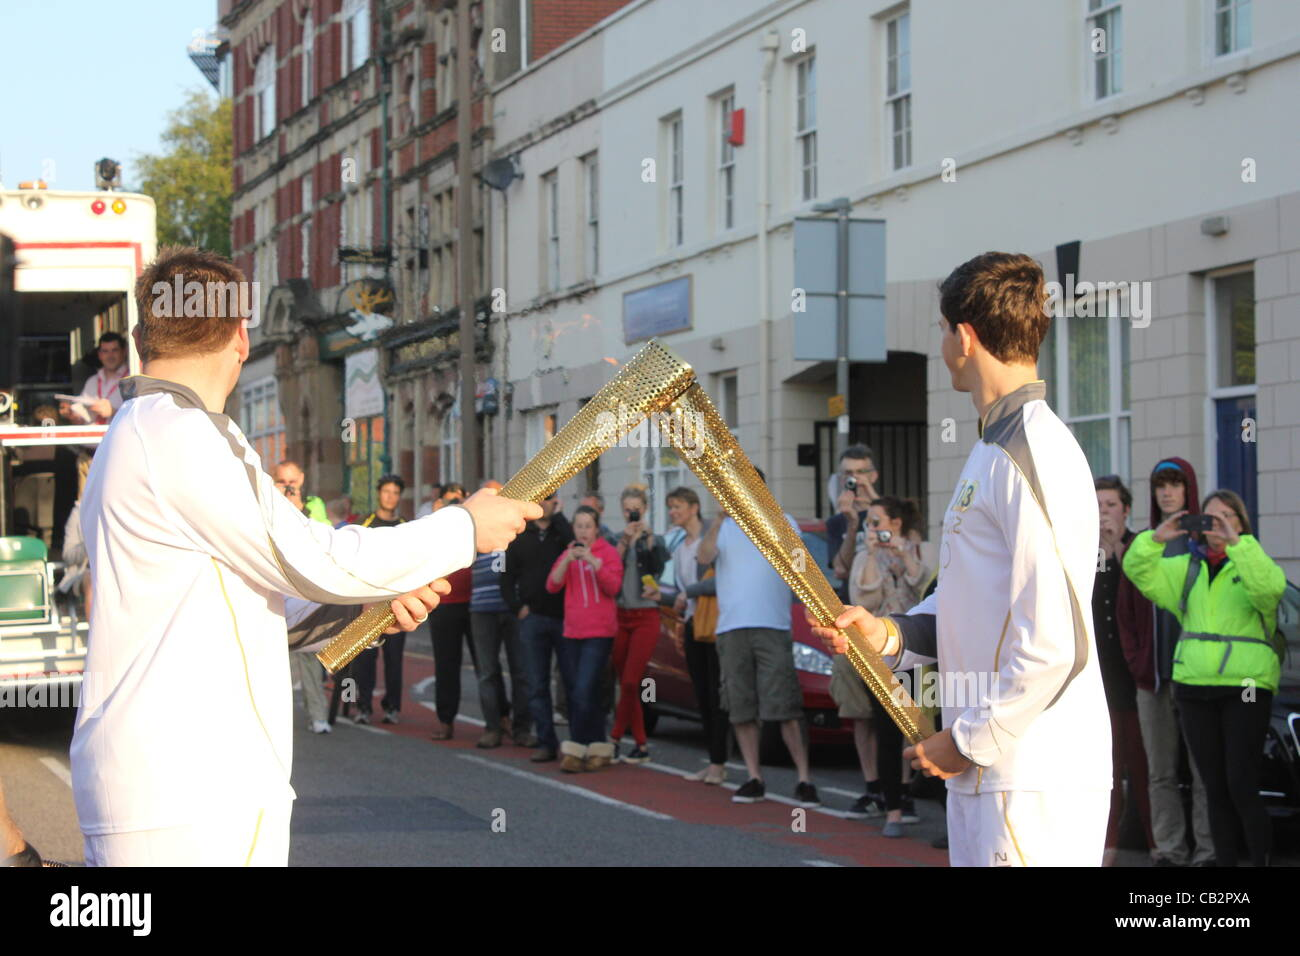 CARDIFF, UK, 26th May 2012. Zak Lee Green, 21, (right) hands the Olympic flame over to the next torchbearer. This - Stock Image